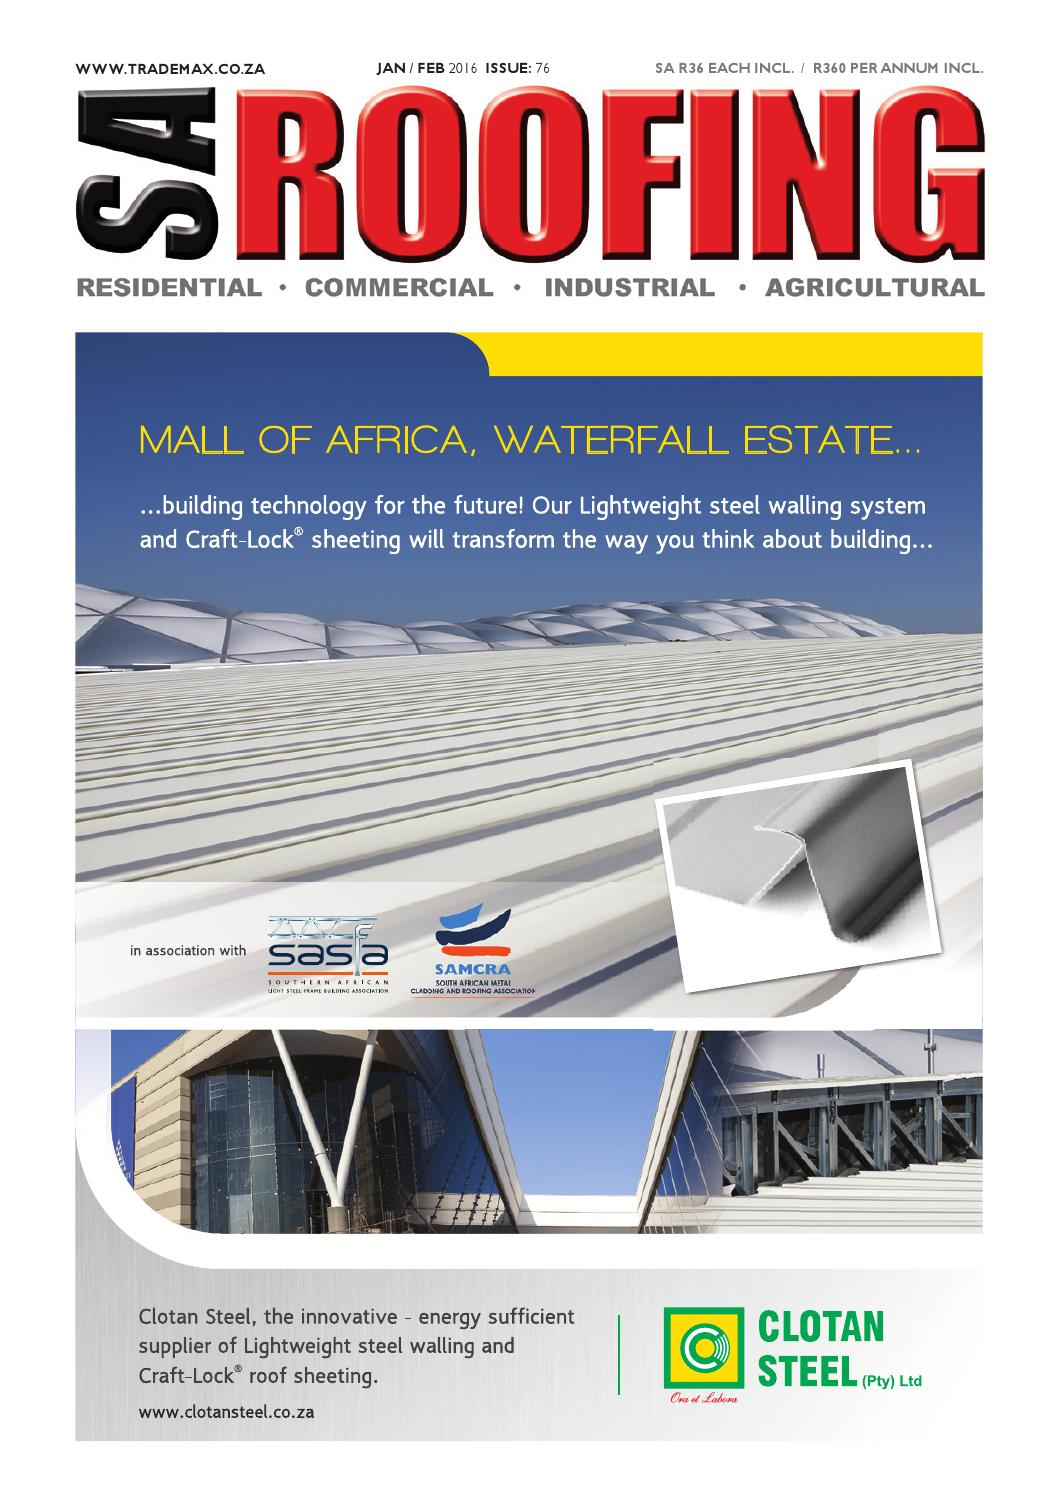 Sa roofing jan feb 2016 issue 76 by trademax publications issuu